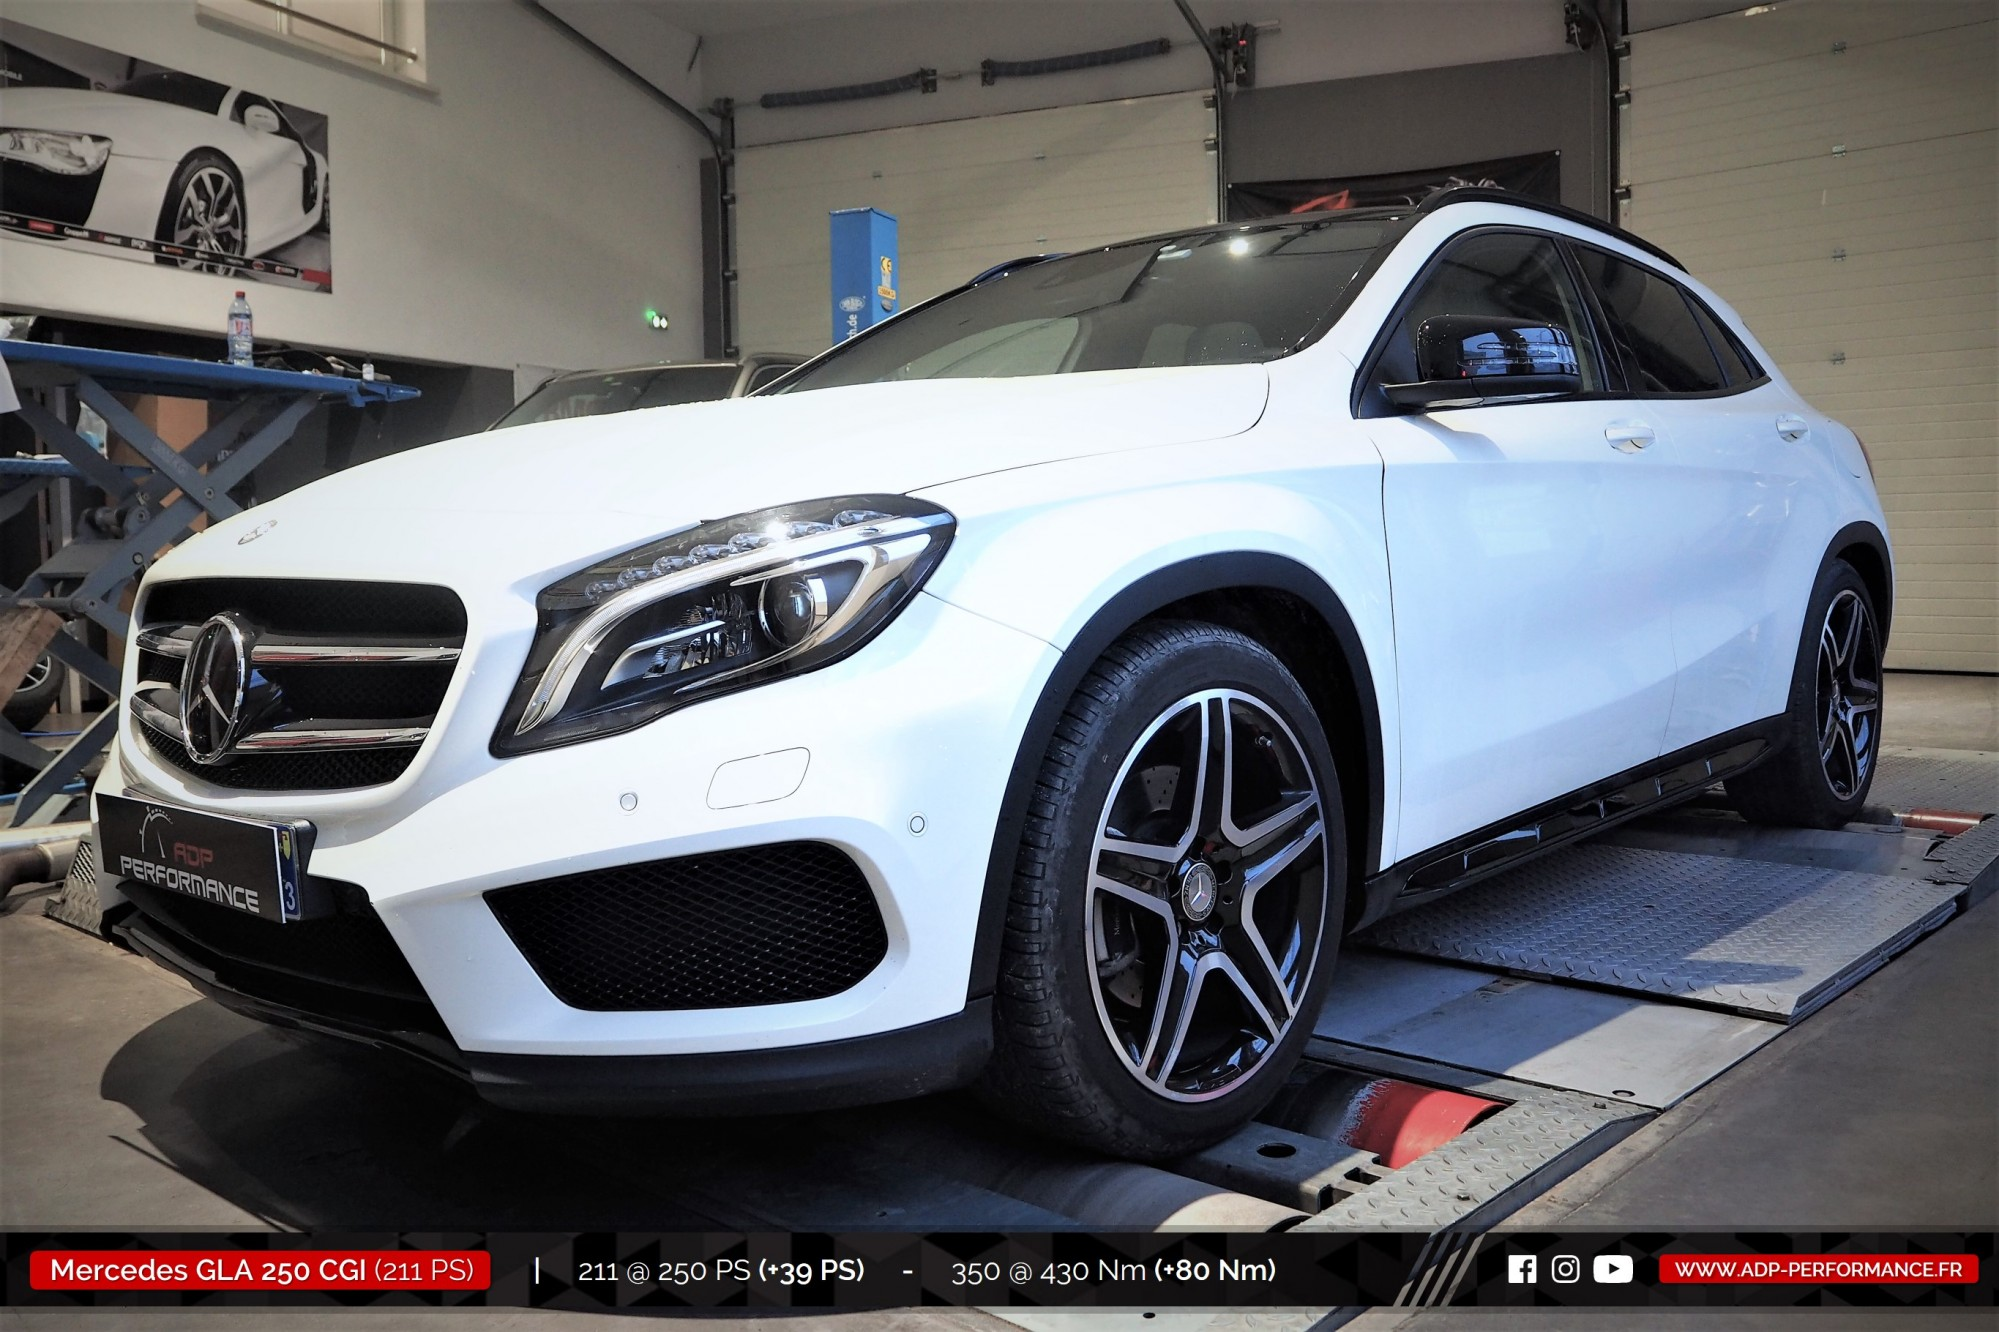 Reprogrammation moteur Salon de Provence - Mercedes GLA 250 CGI 211cv - ADP Performance